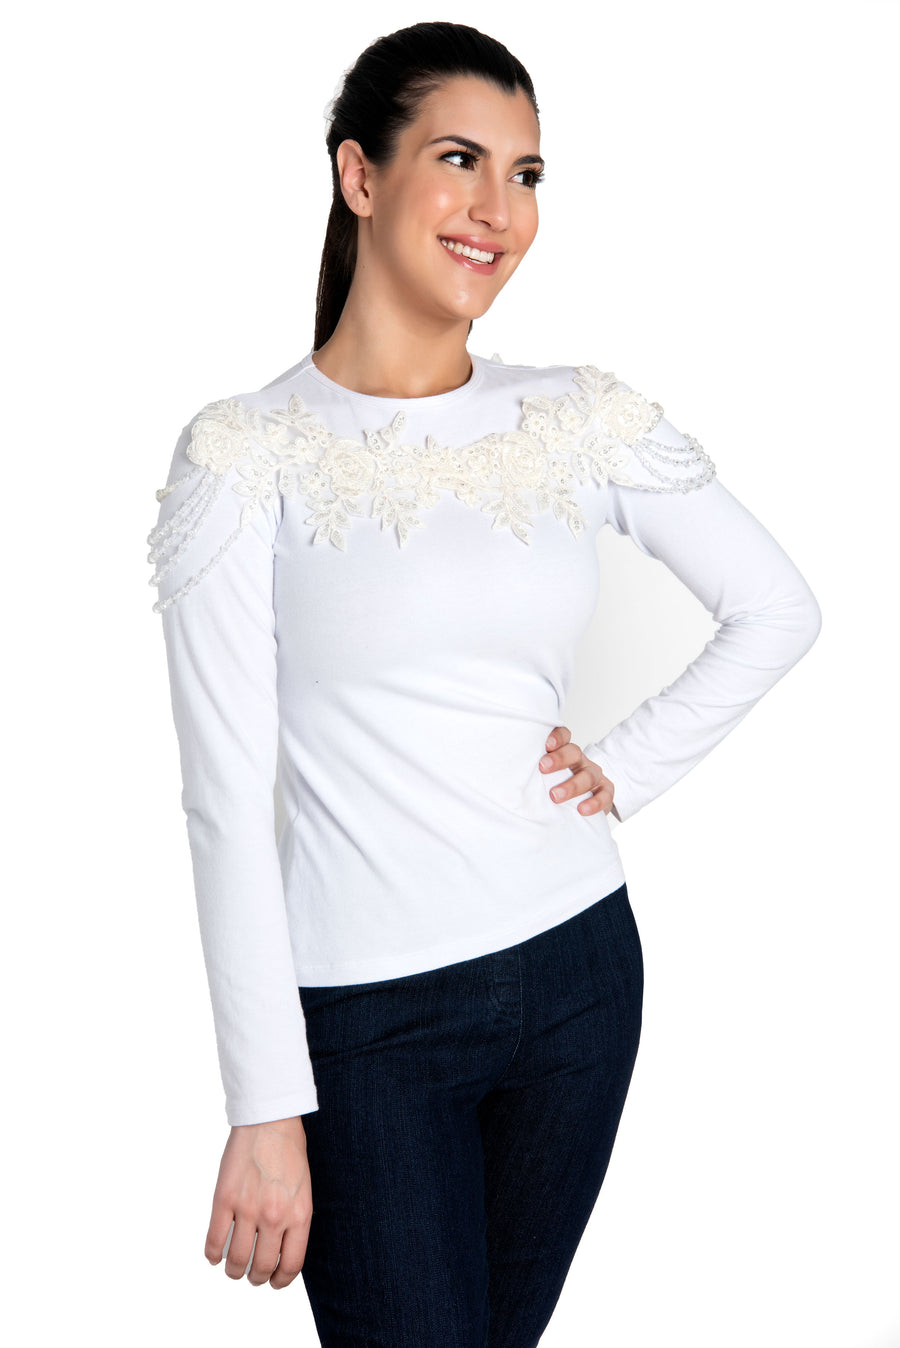 Long Sleeve White Top With Jeweled Neckline